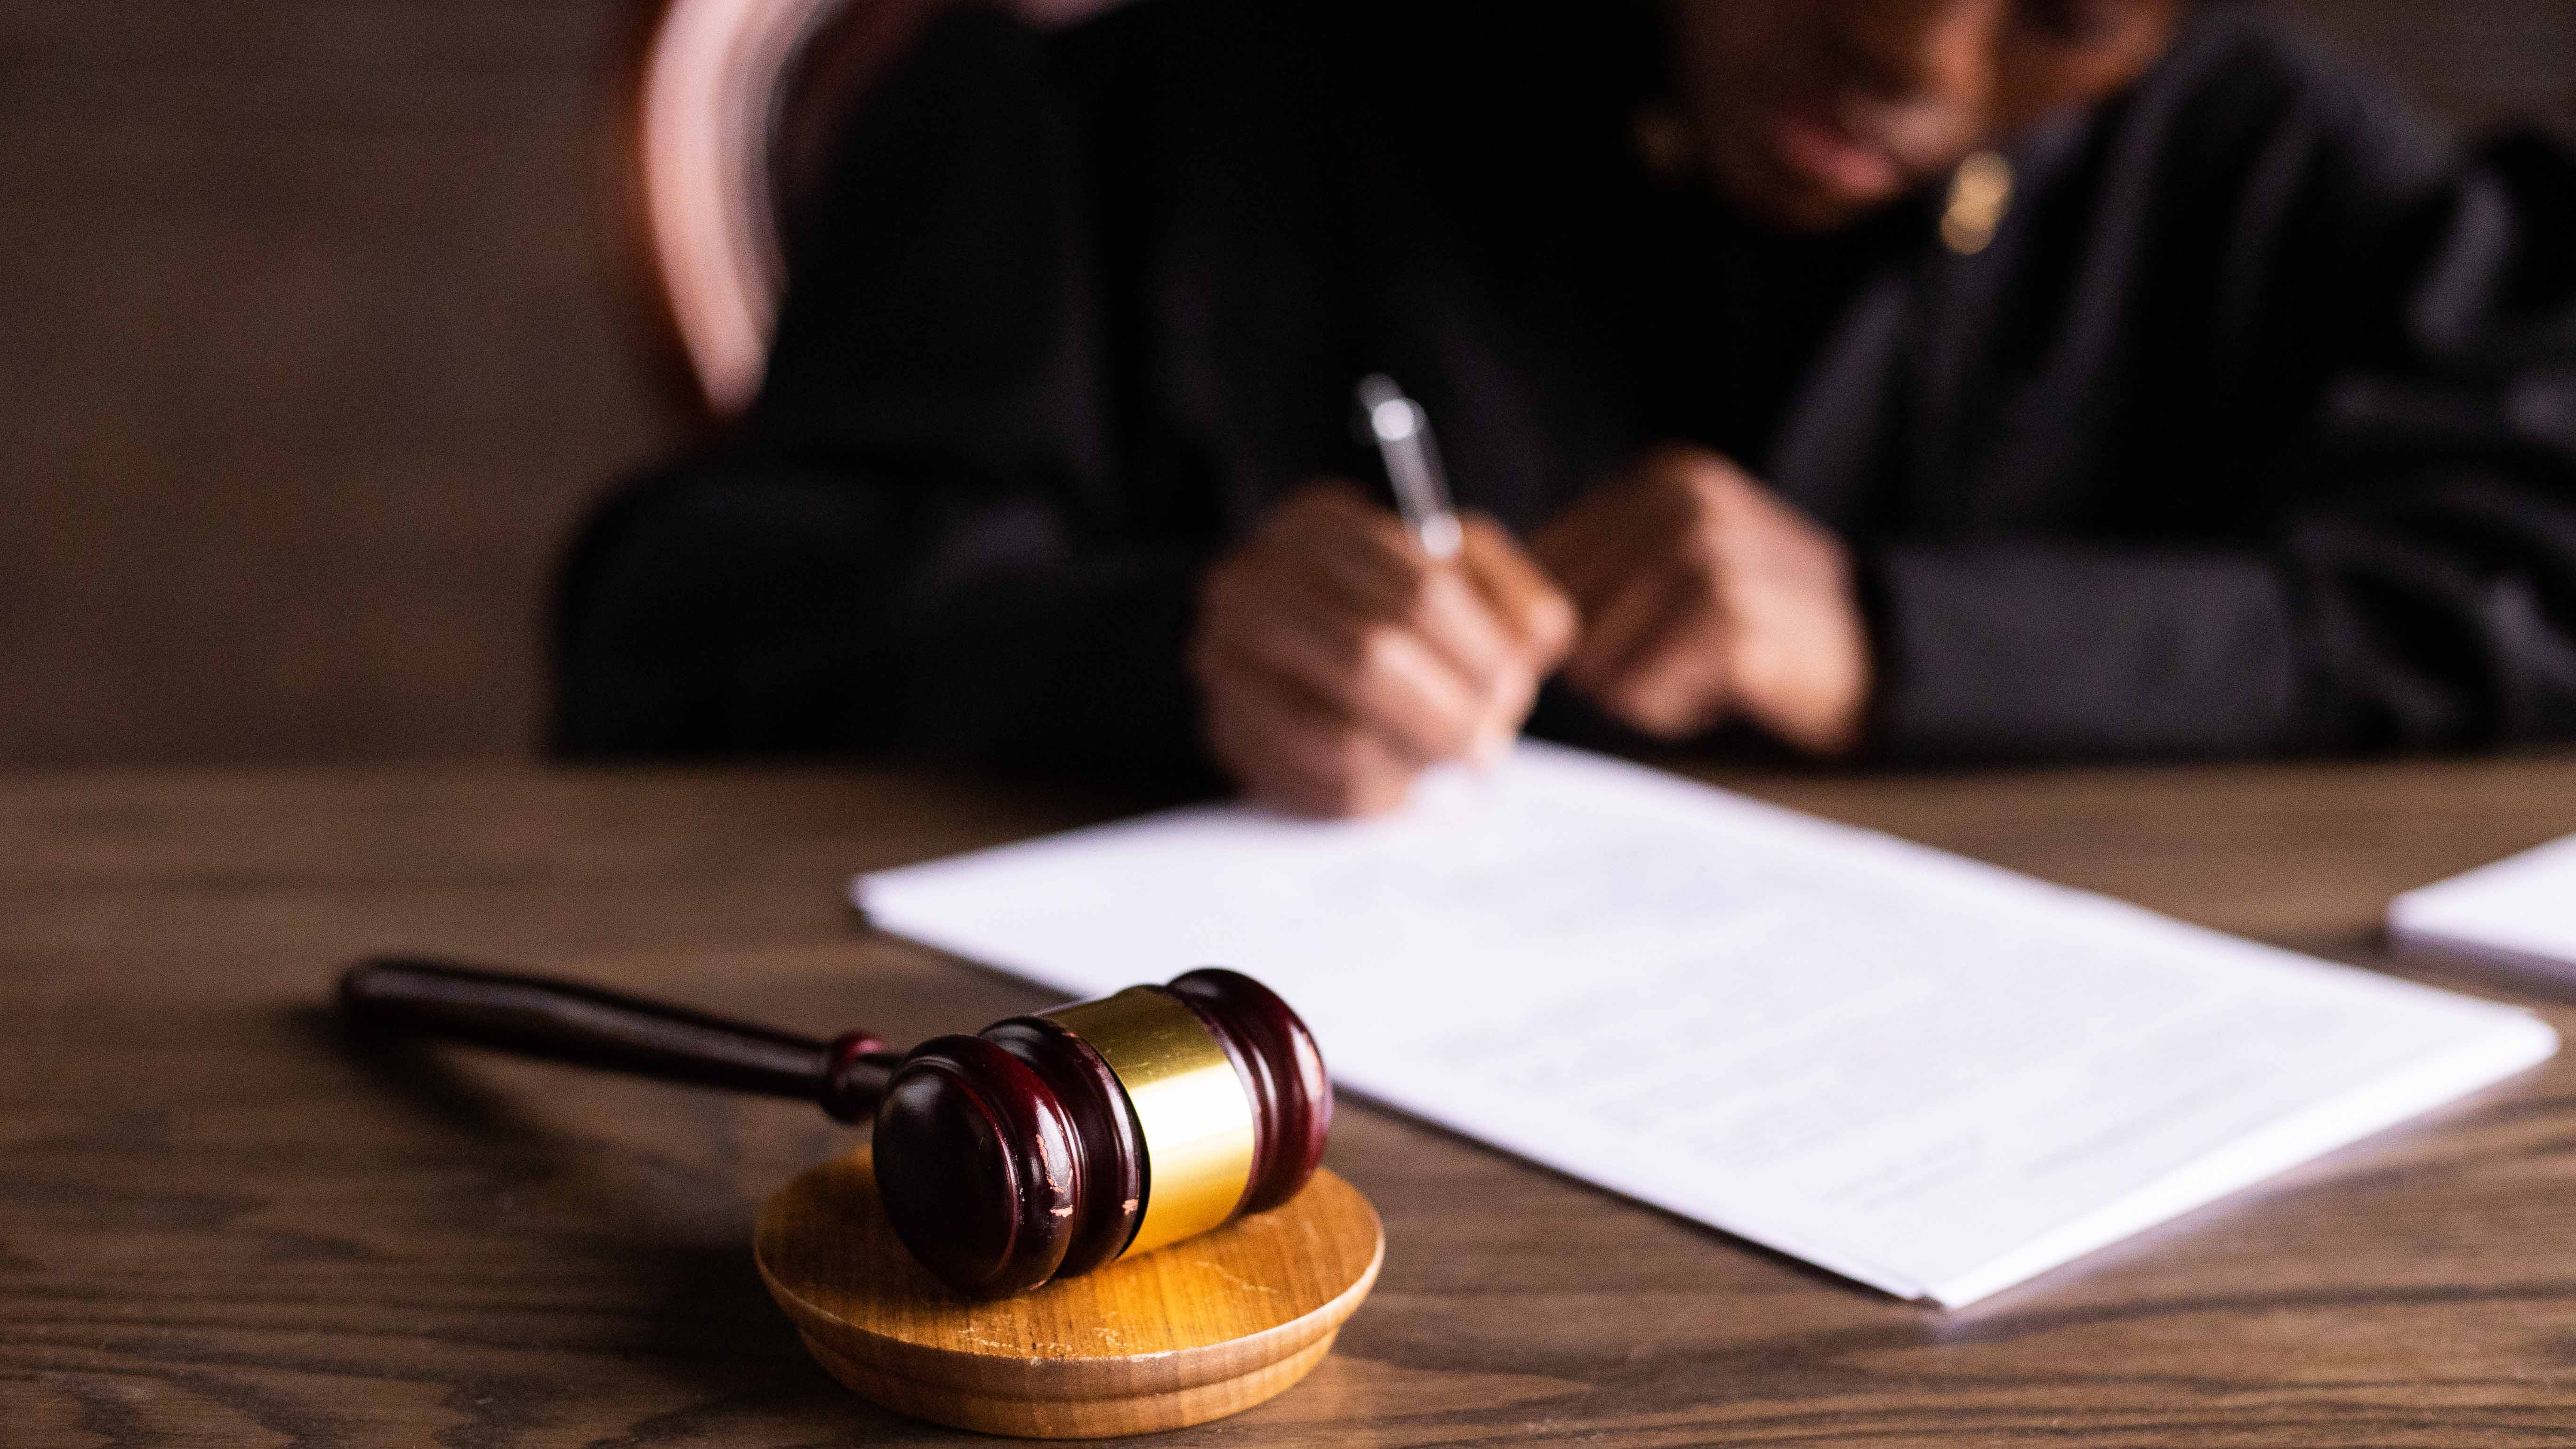 A gavel is placed in front of a judge.